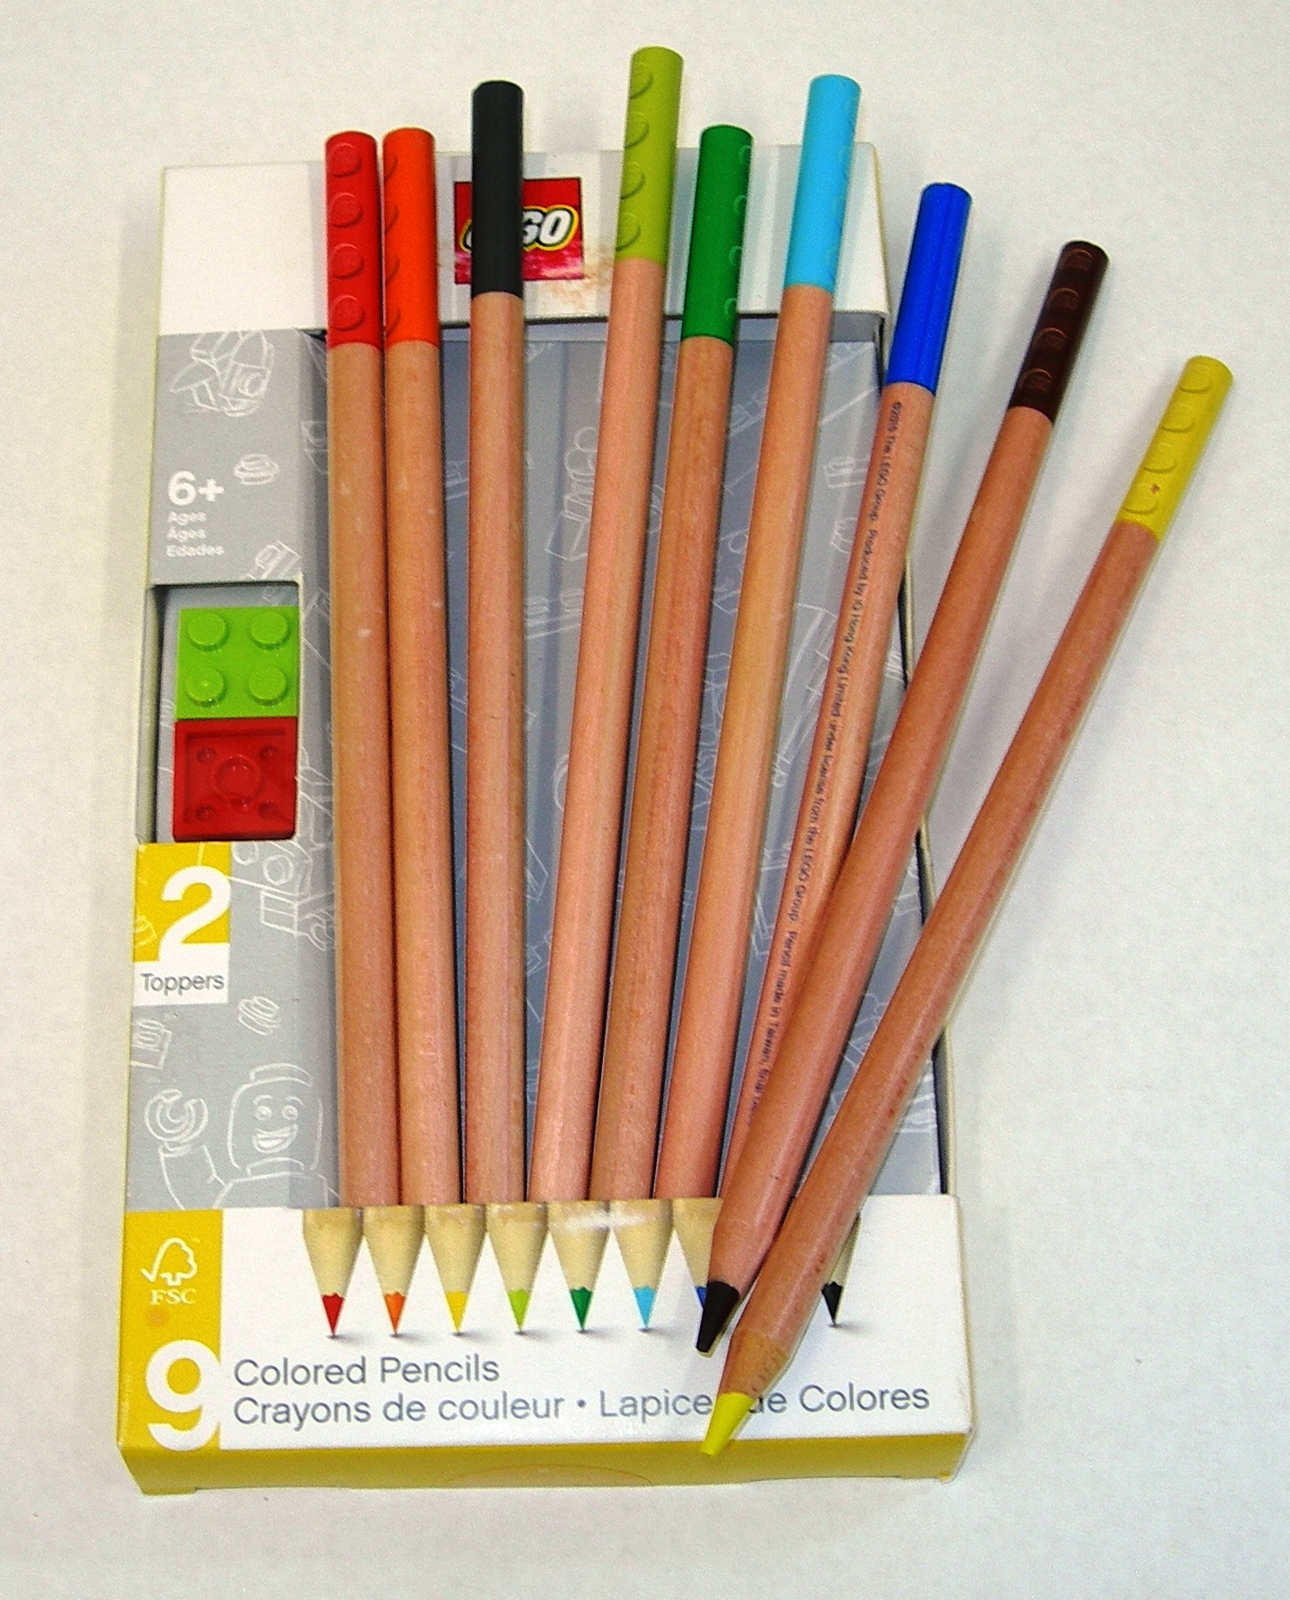 LEGO: Coloured Pencils - 9 Pack image